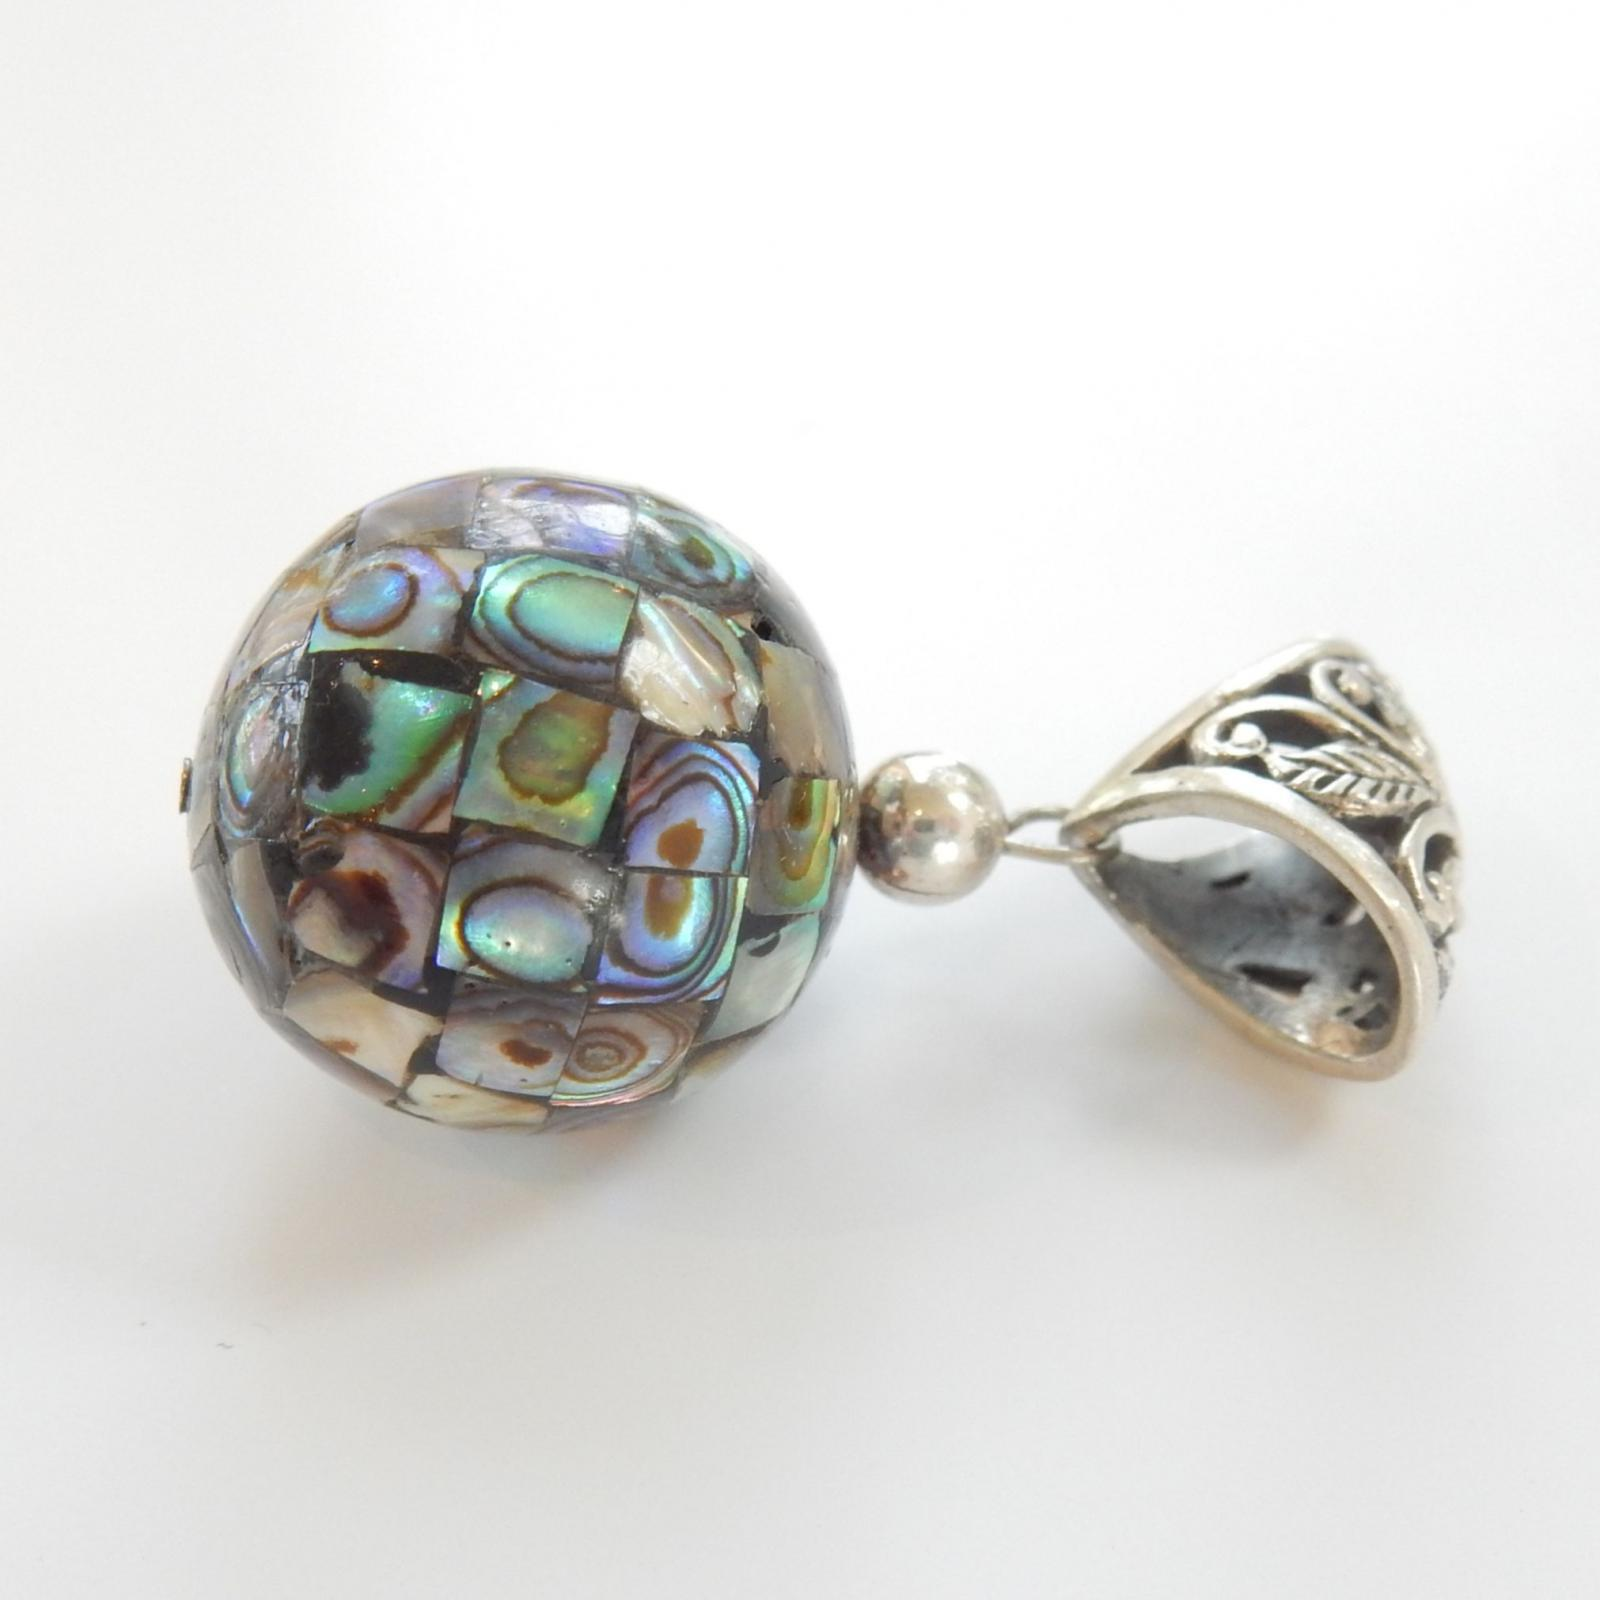 Photo of Vintage Filigree Silver Inlaid Abalone Shell Pendant